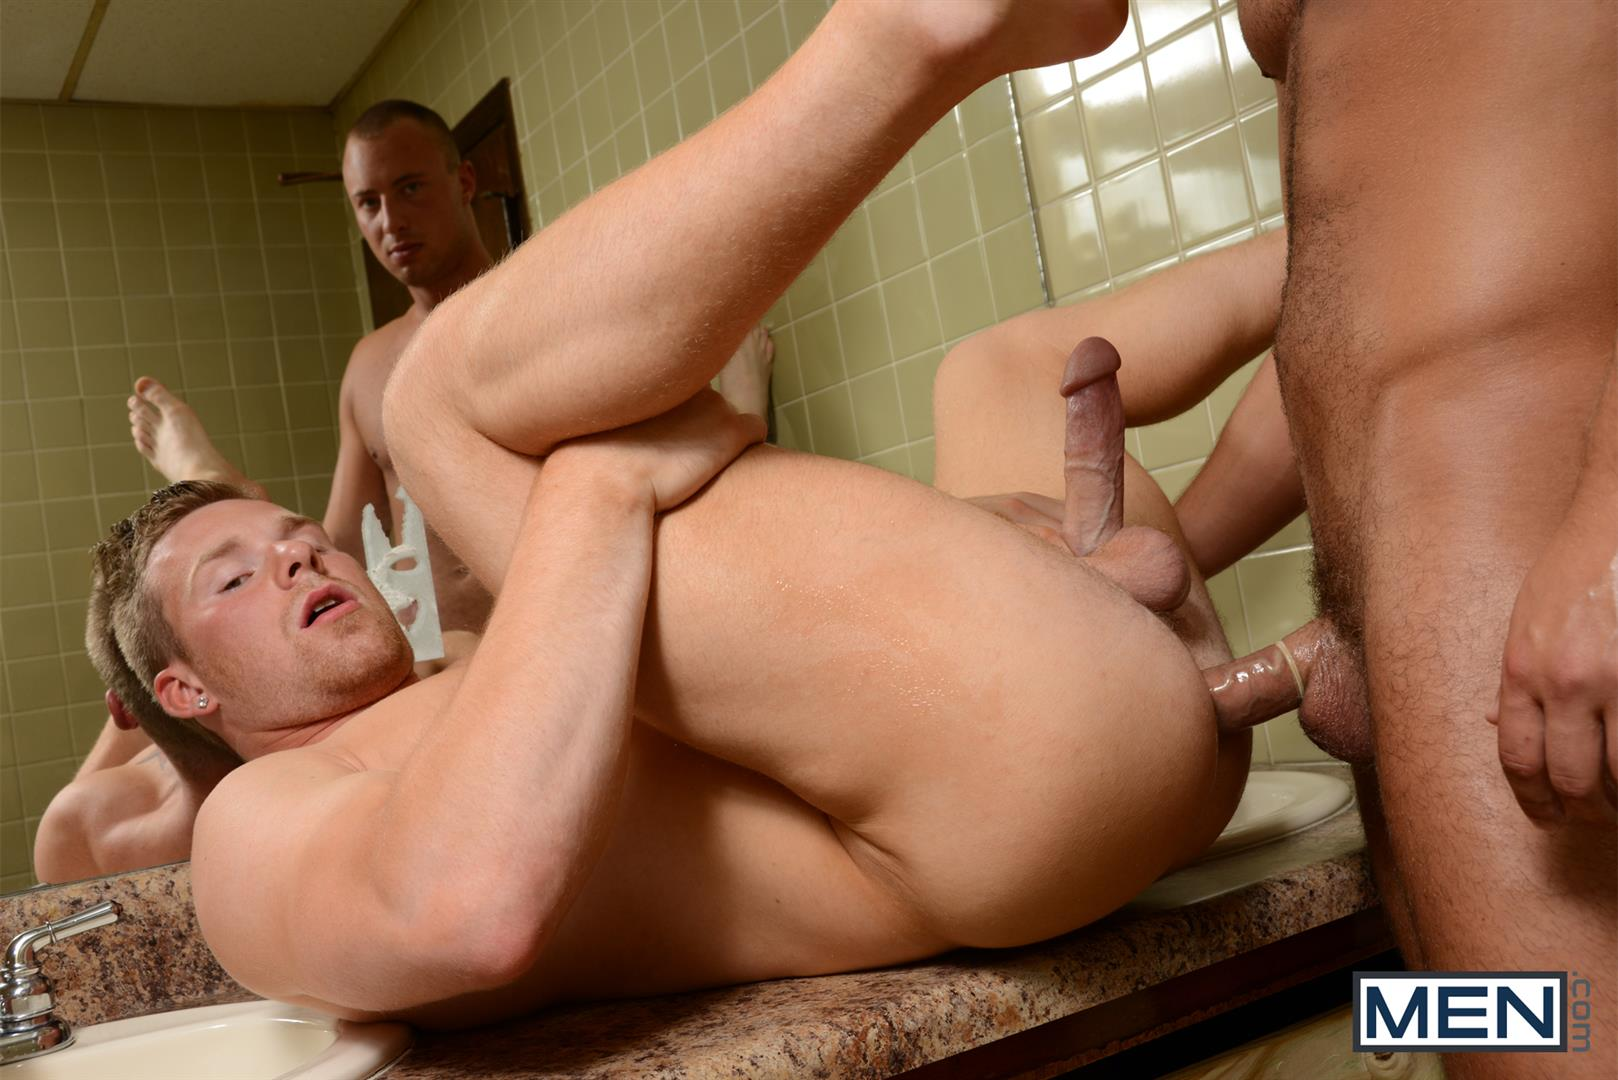 Men.com Dustin Tyler and Owen Michaels Str8 to Gay Fucking In A Park Restroom Cruising Amateur Gay Porn 10 Straight Guy Gets Fucked In The Ass While Cruising A Park Restroom